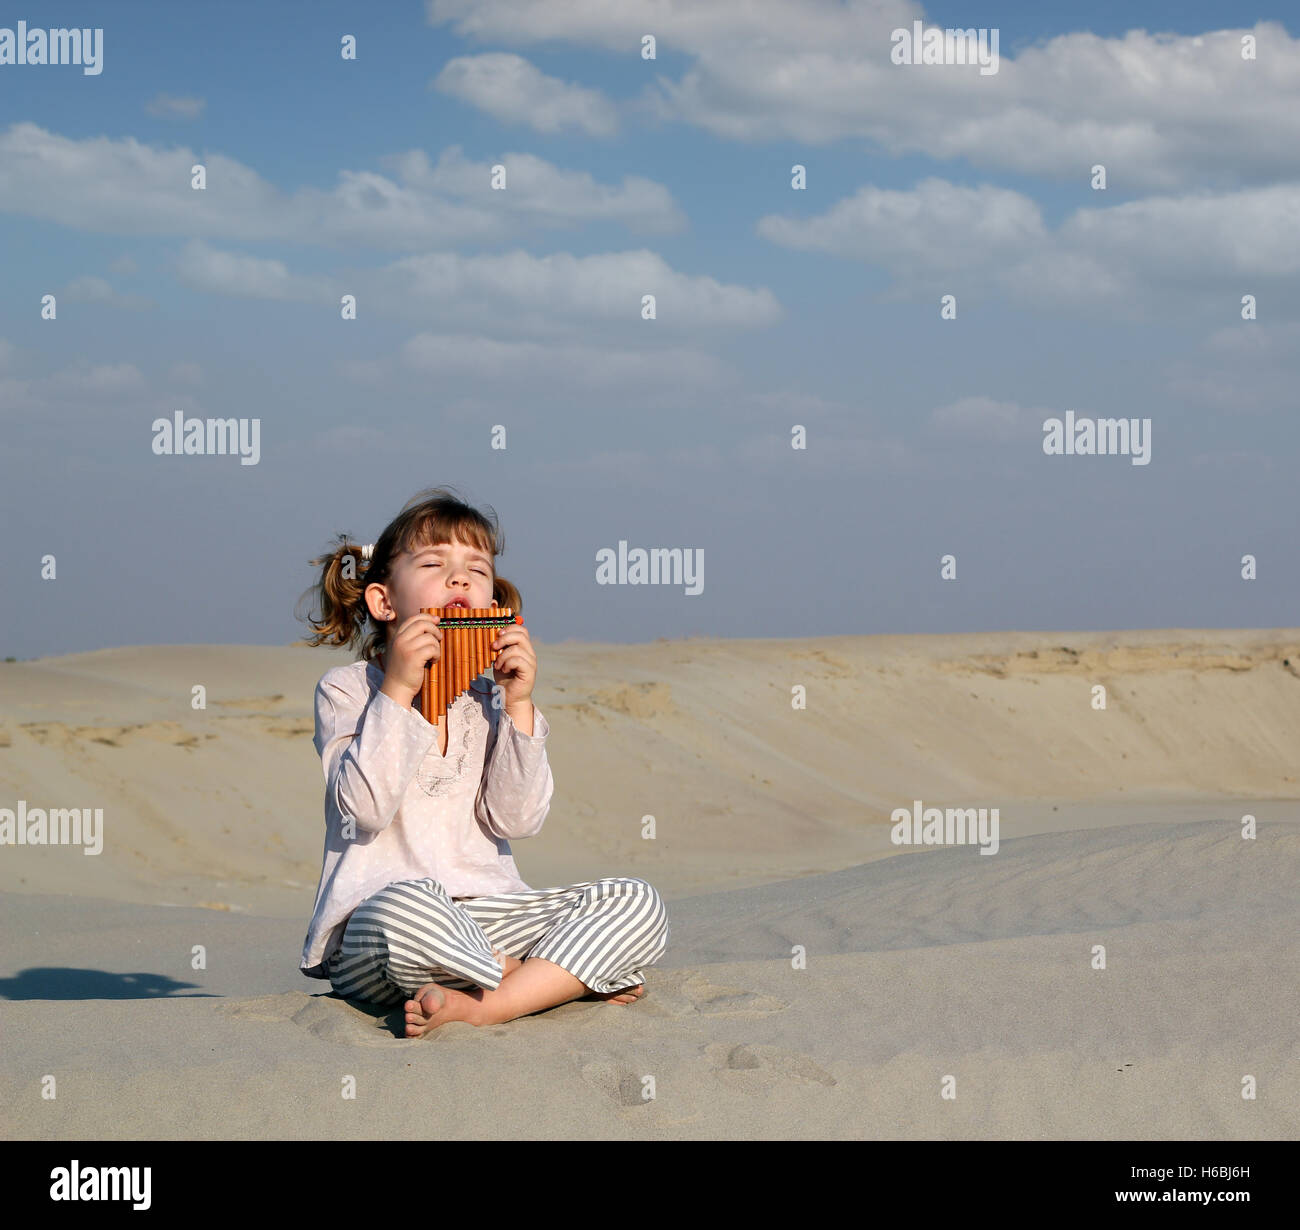 little girl play music on pan pipe in desert - Stock Image